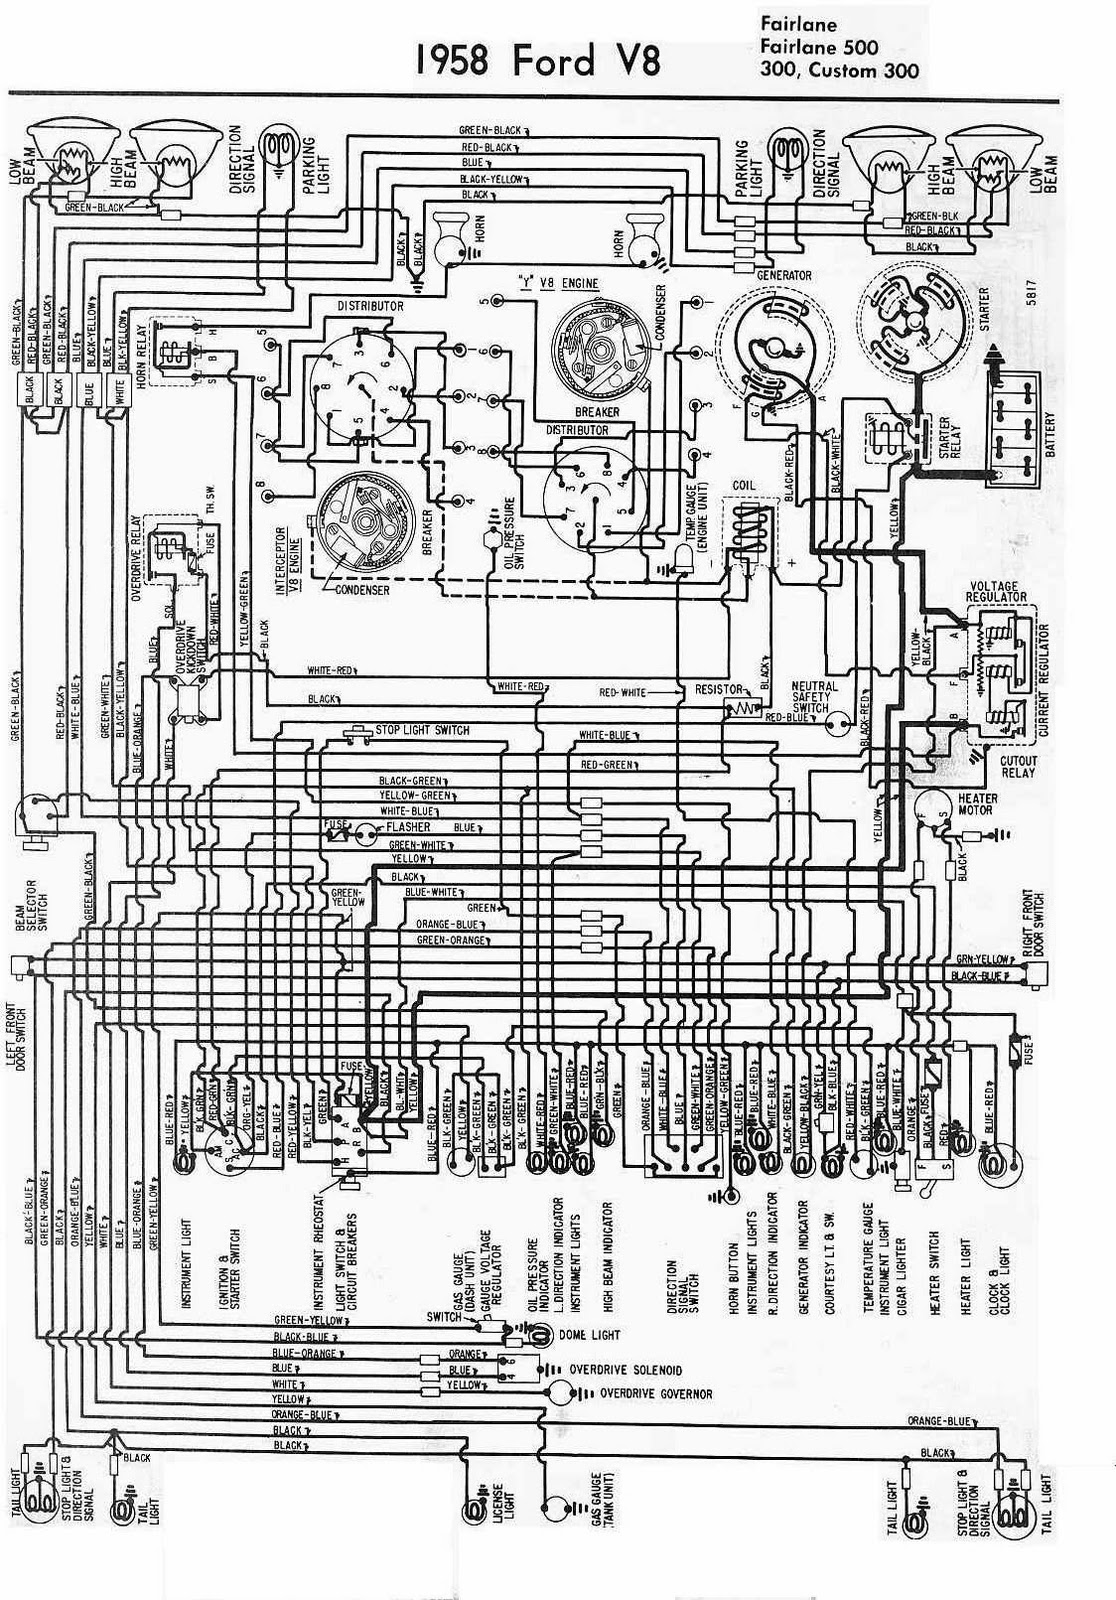 Electrical Wiring Diagram For 1958 Ford V8 | All about